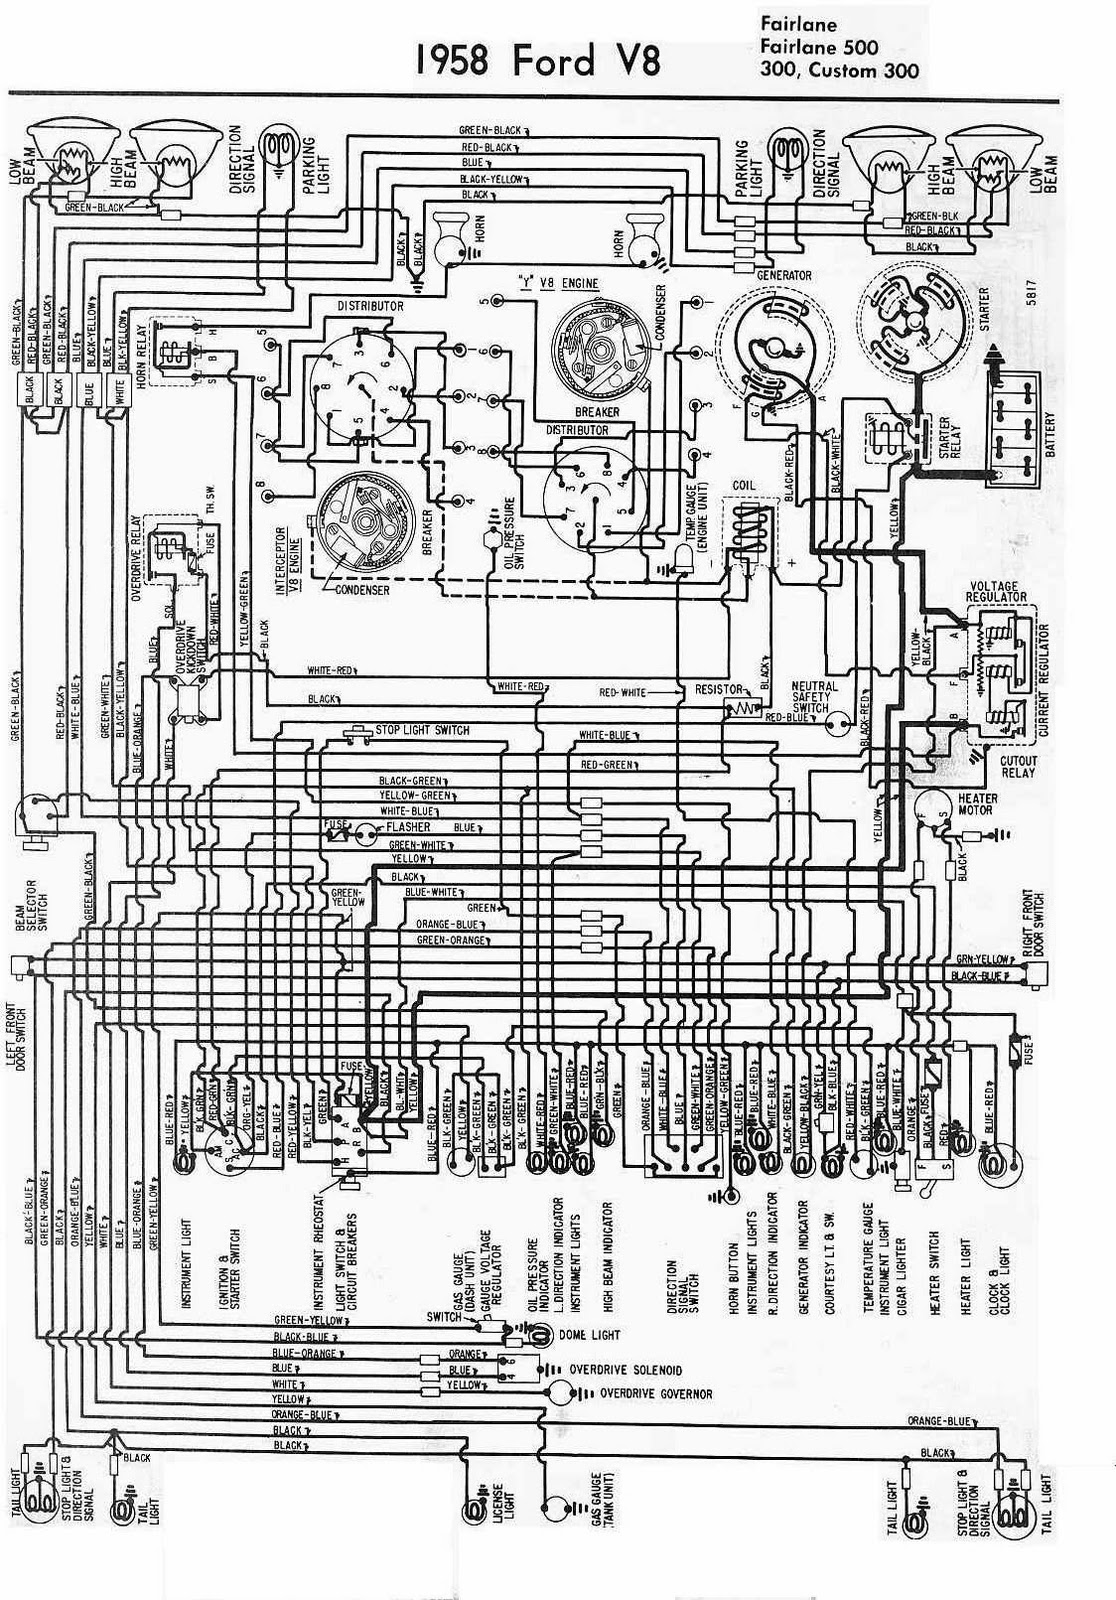 Electrical Wiring Diagram For 1958 Ford V8 | All about